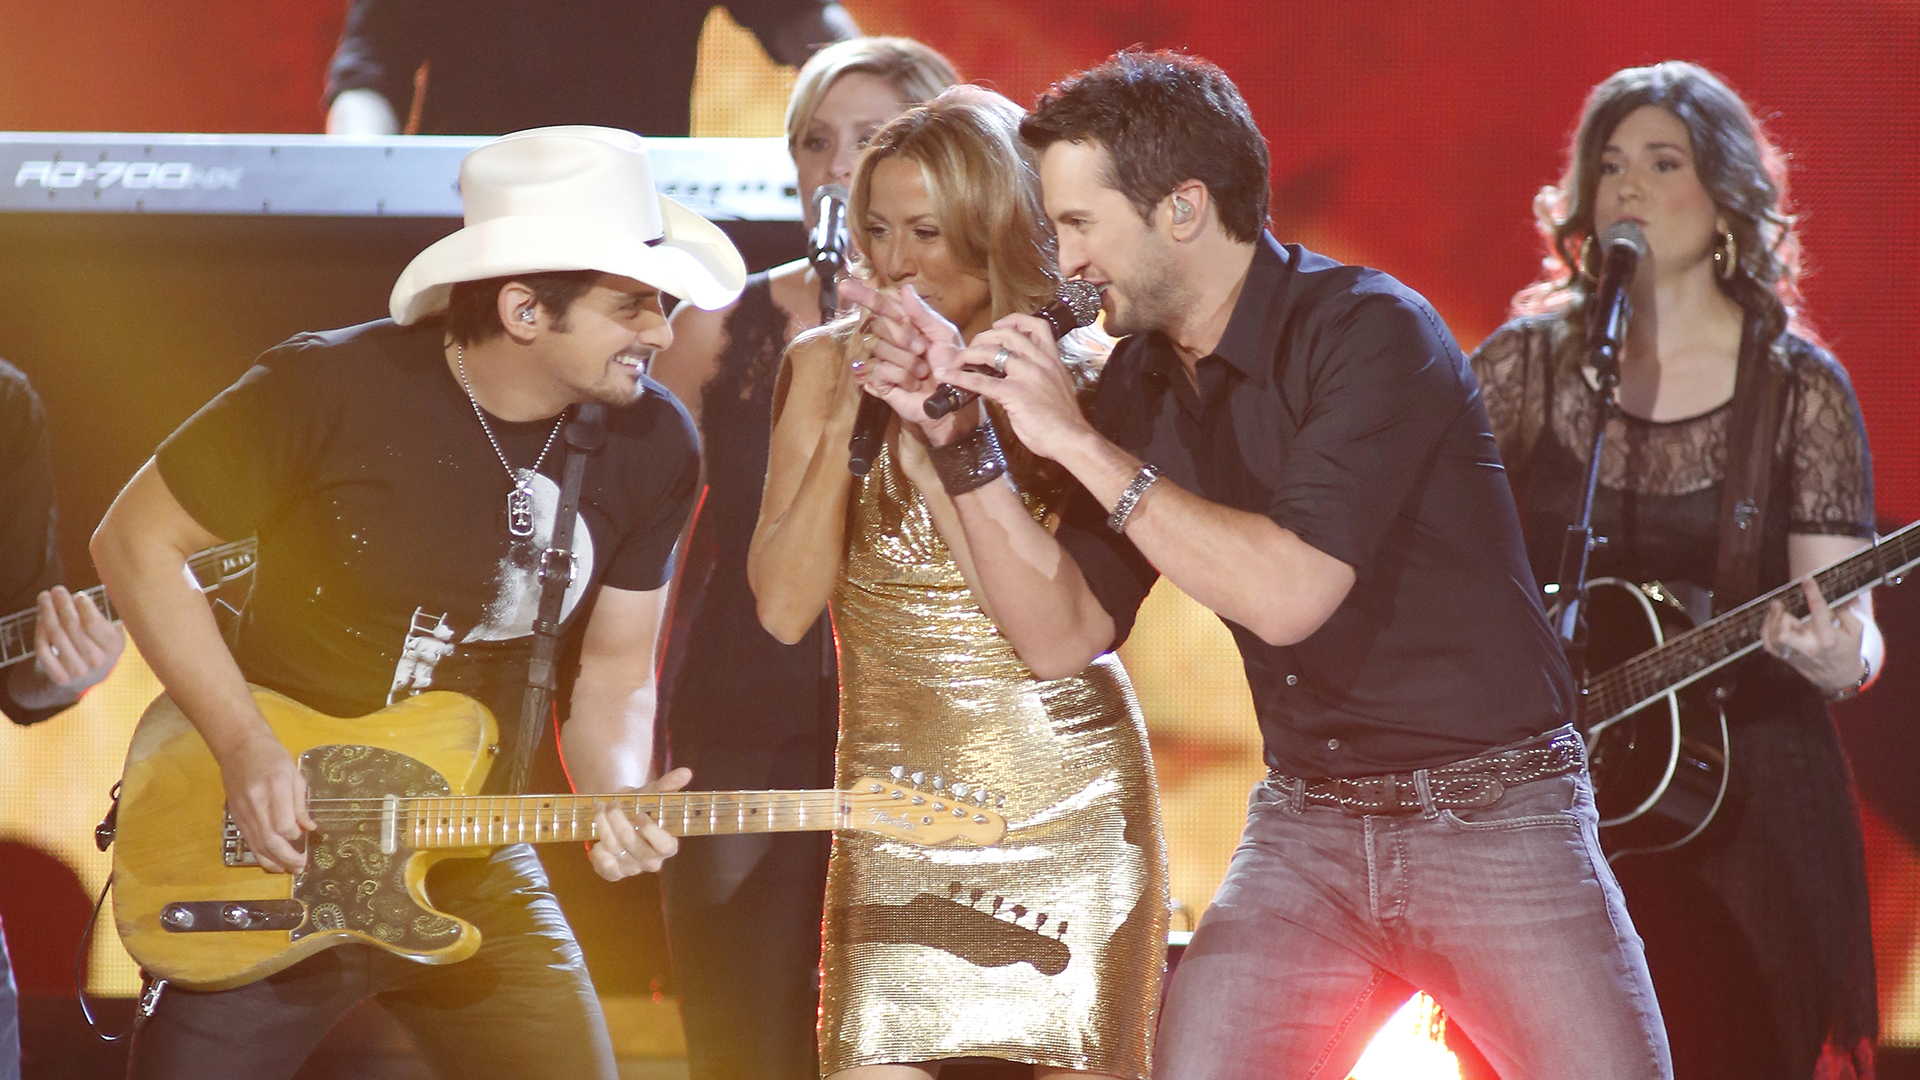 9. Brad Paisley, Luke Bryan, and Sheryl Crow perform